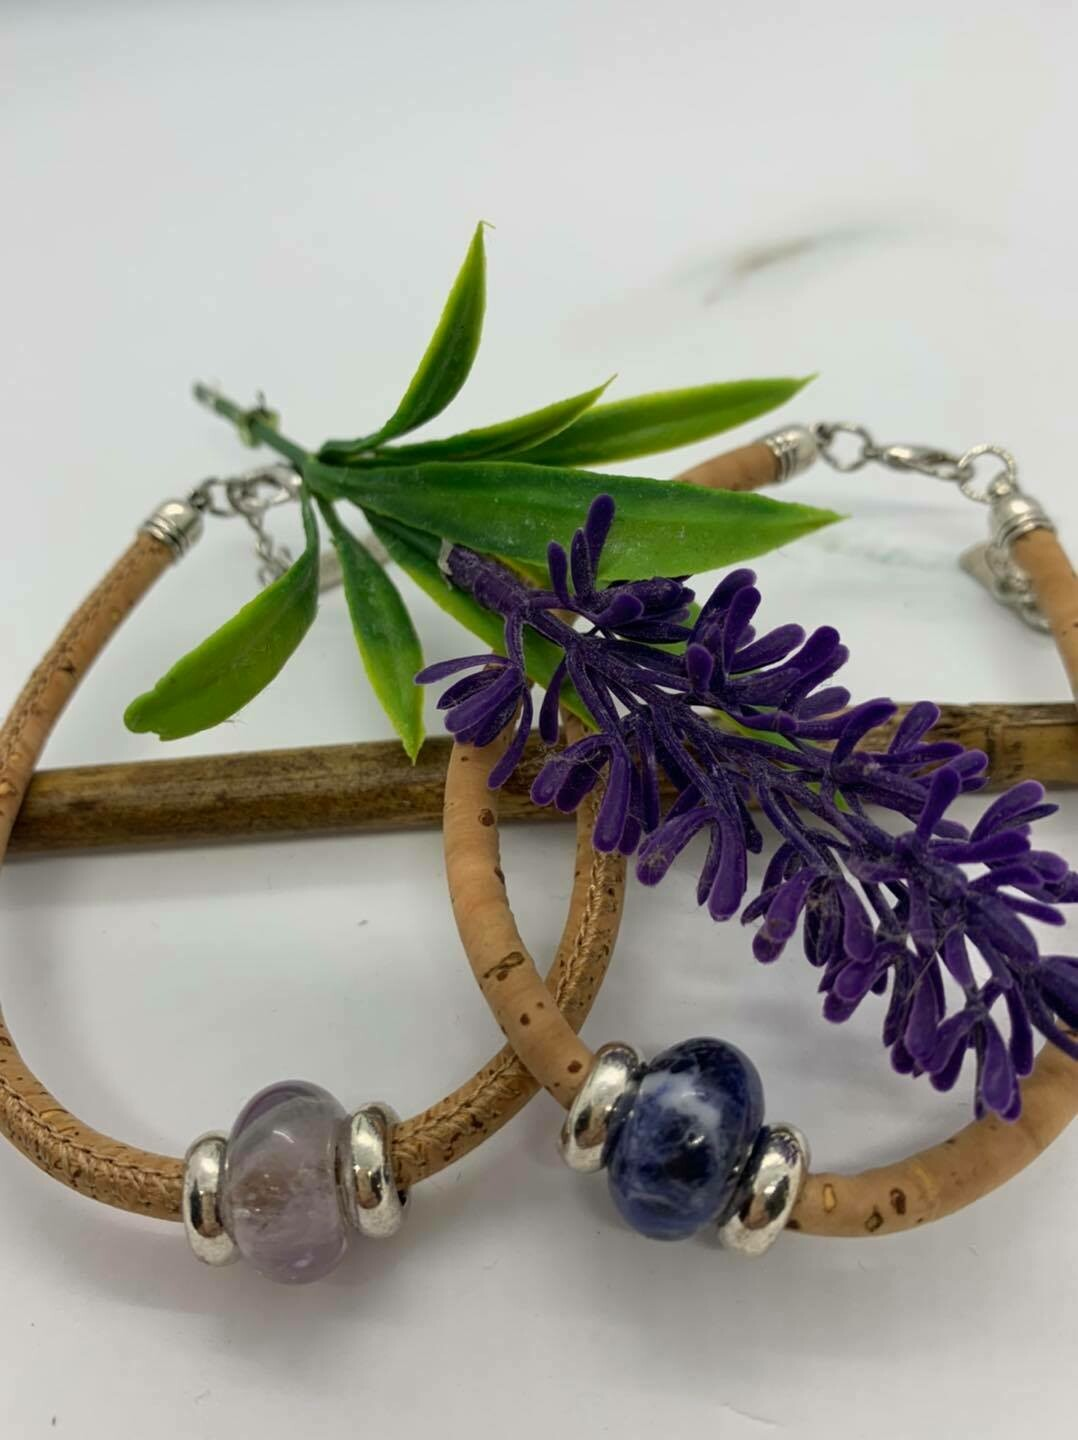 Cork bracelets with gemstones